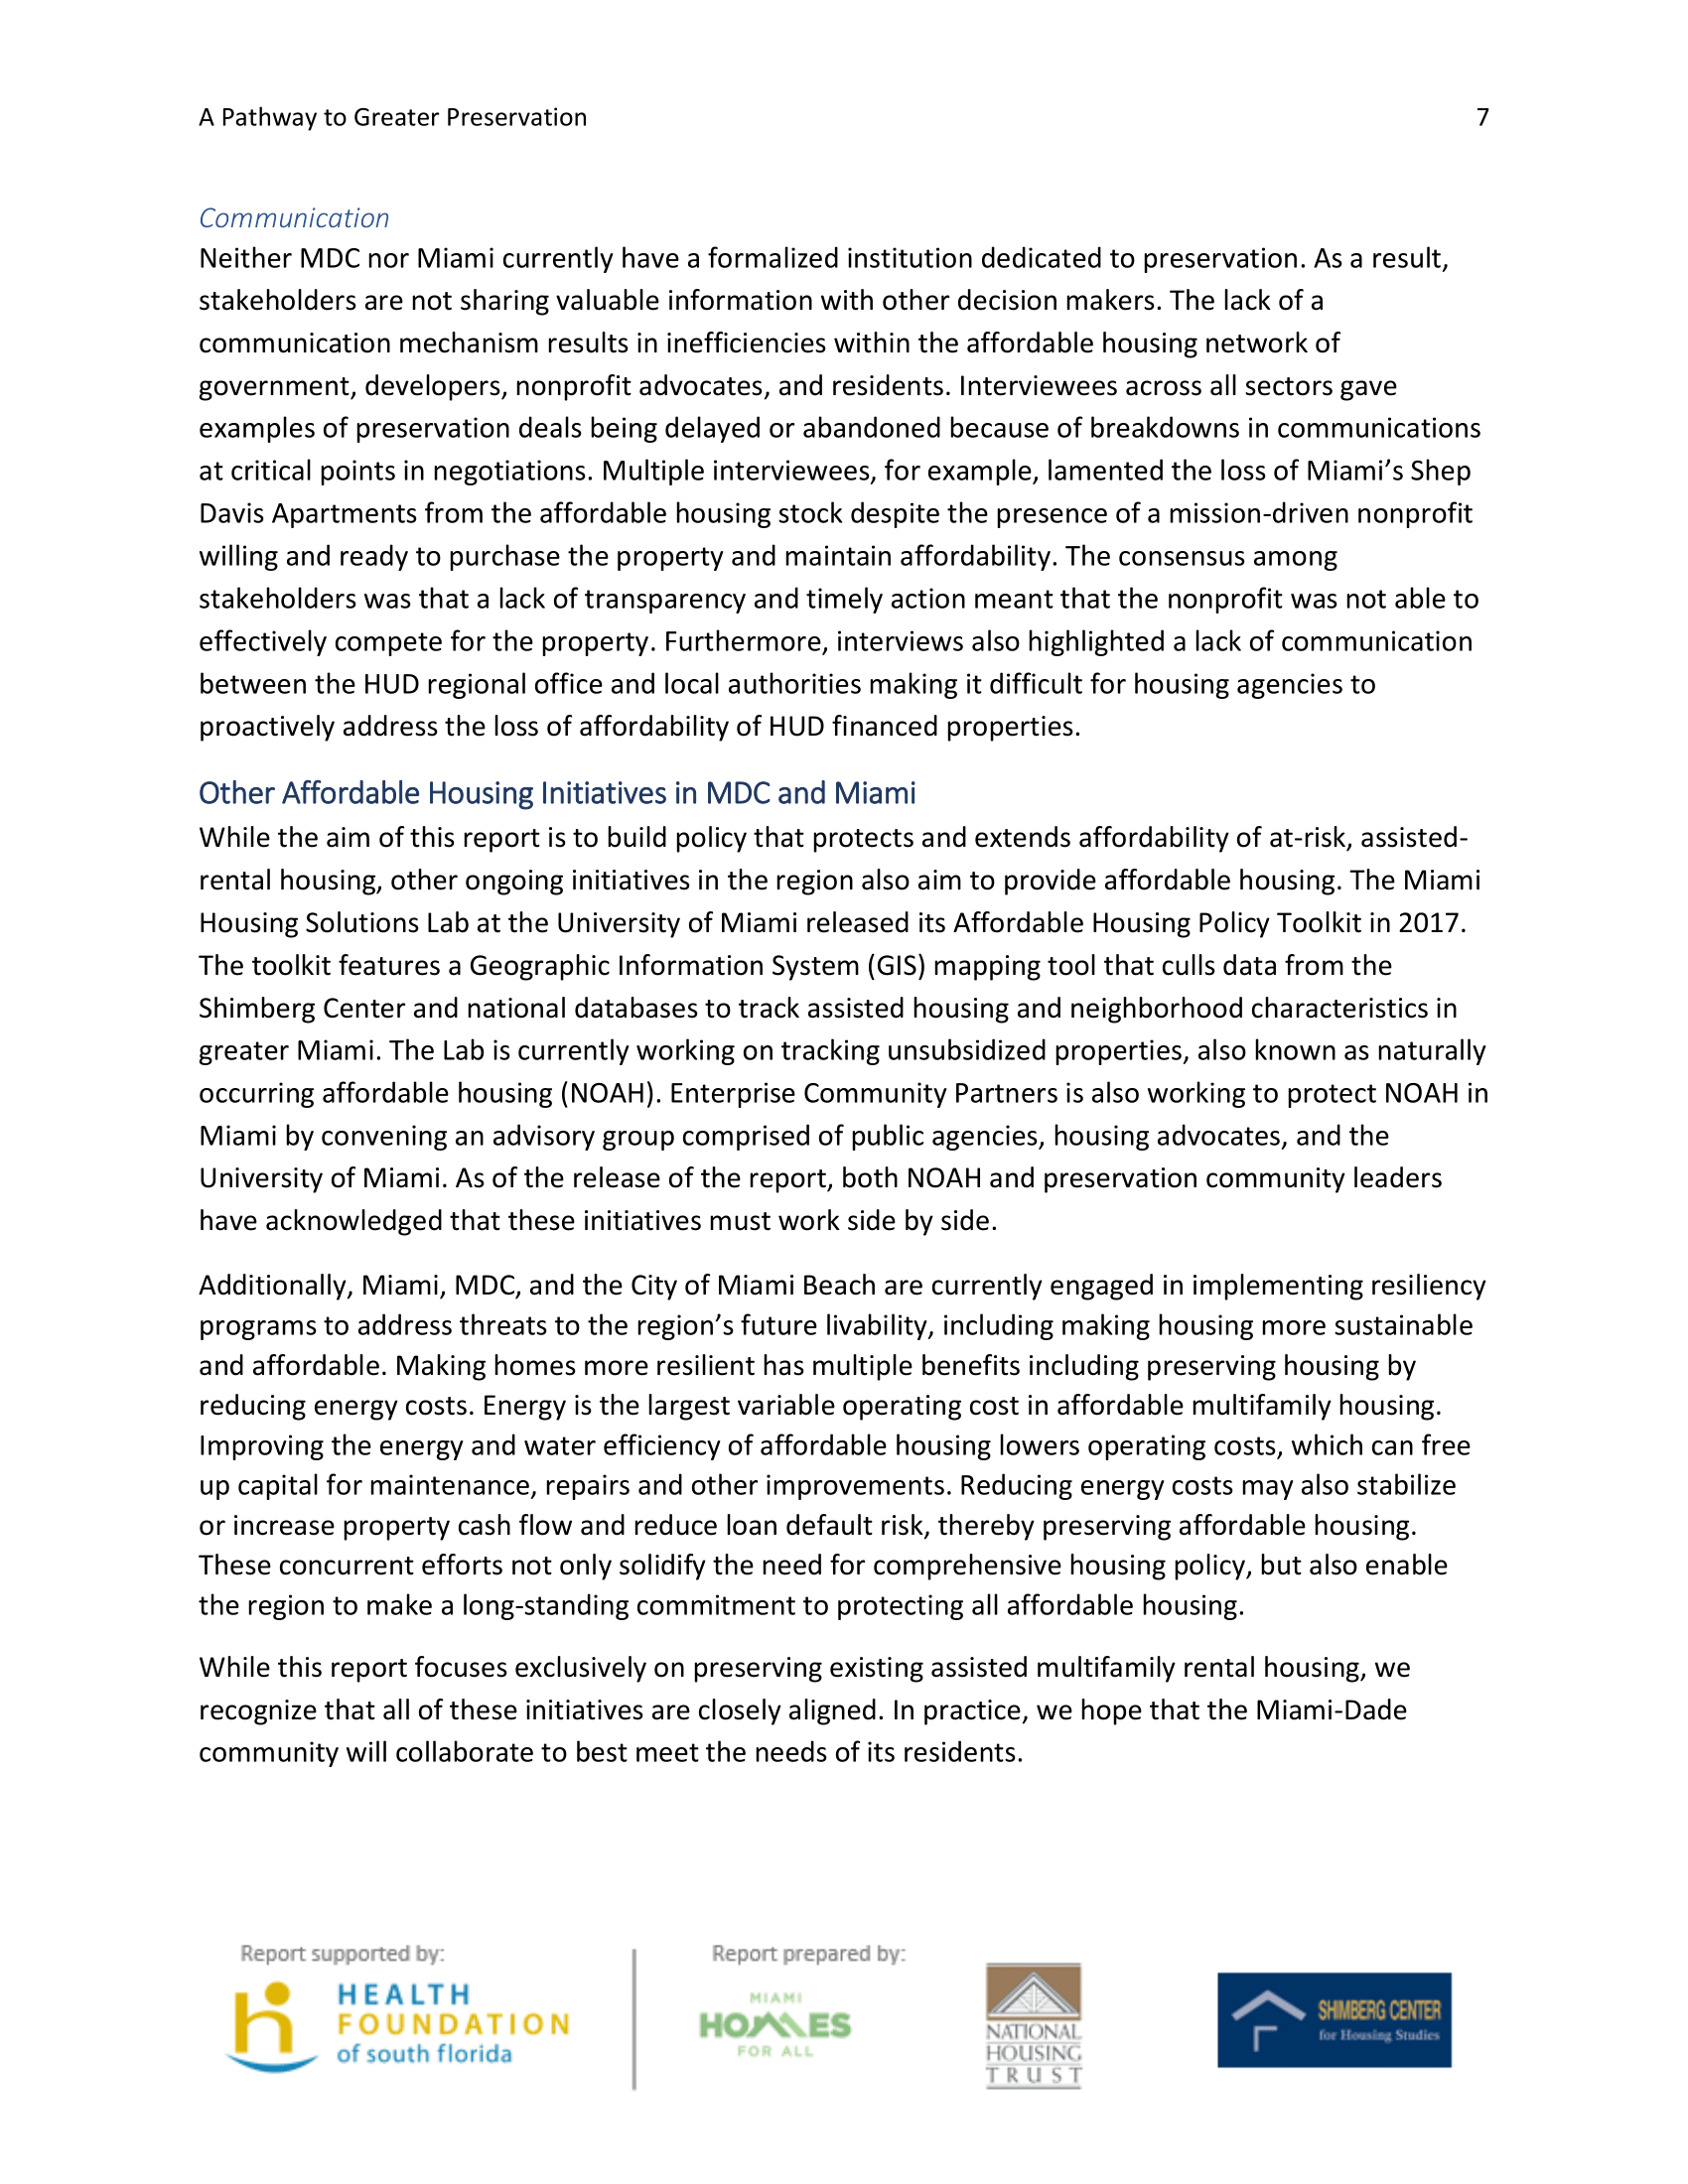 A Pathway to Greater Preservation - February 2018-15.png